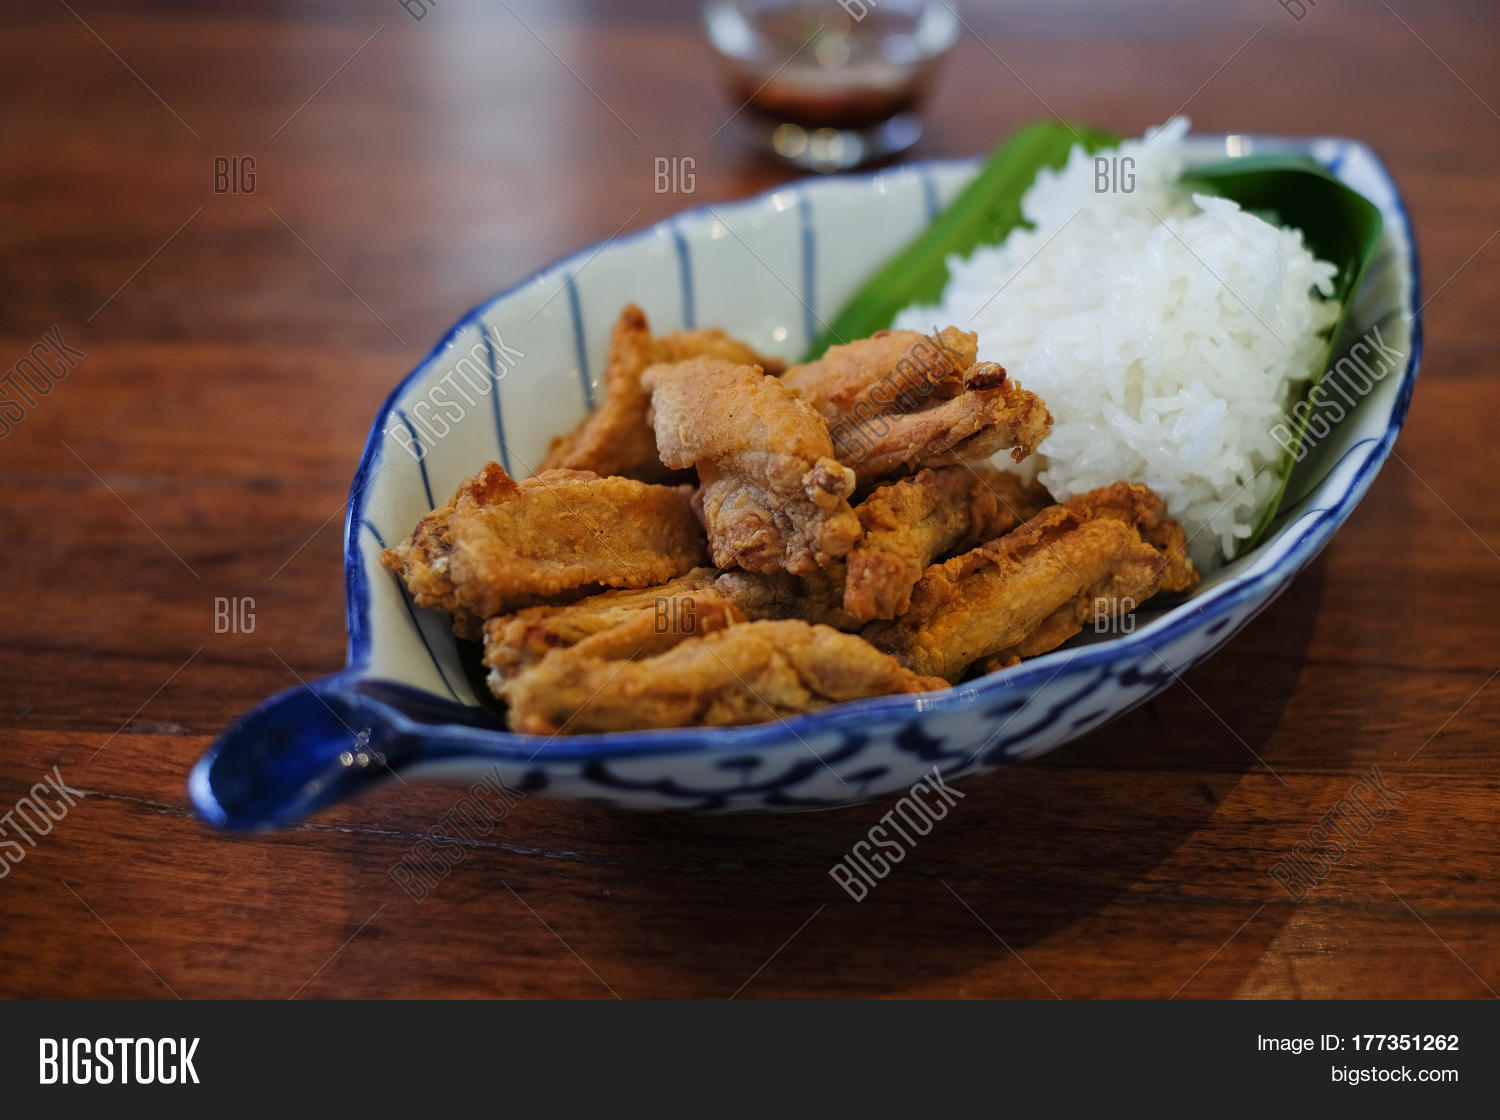 Fried chicken wings sticky rice on image photo bigstock for Table 52 fried chicken recipe